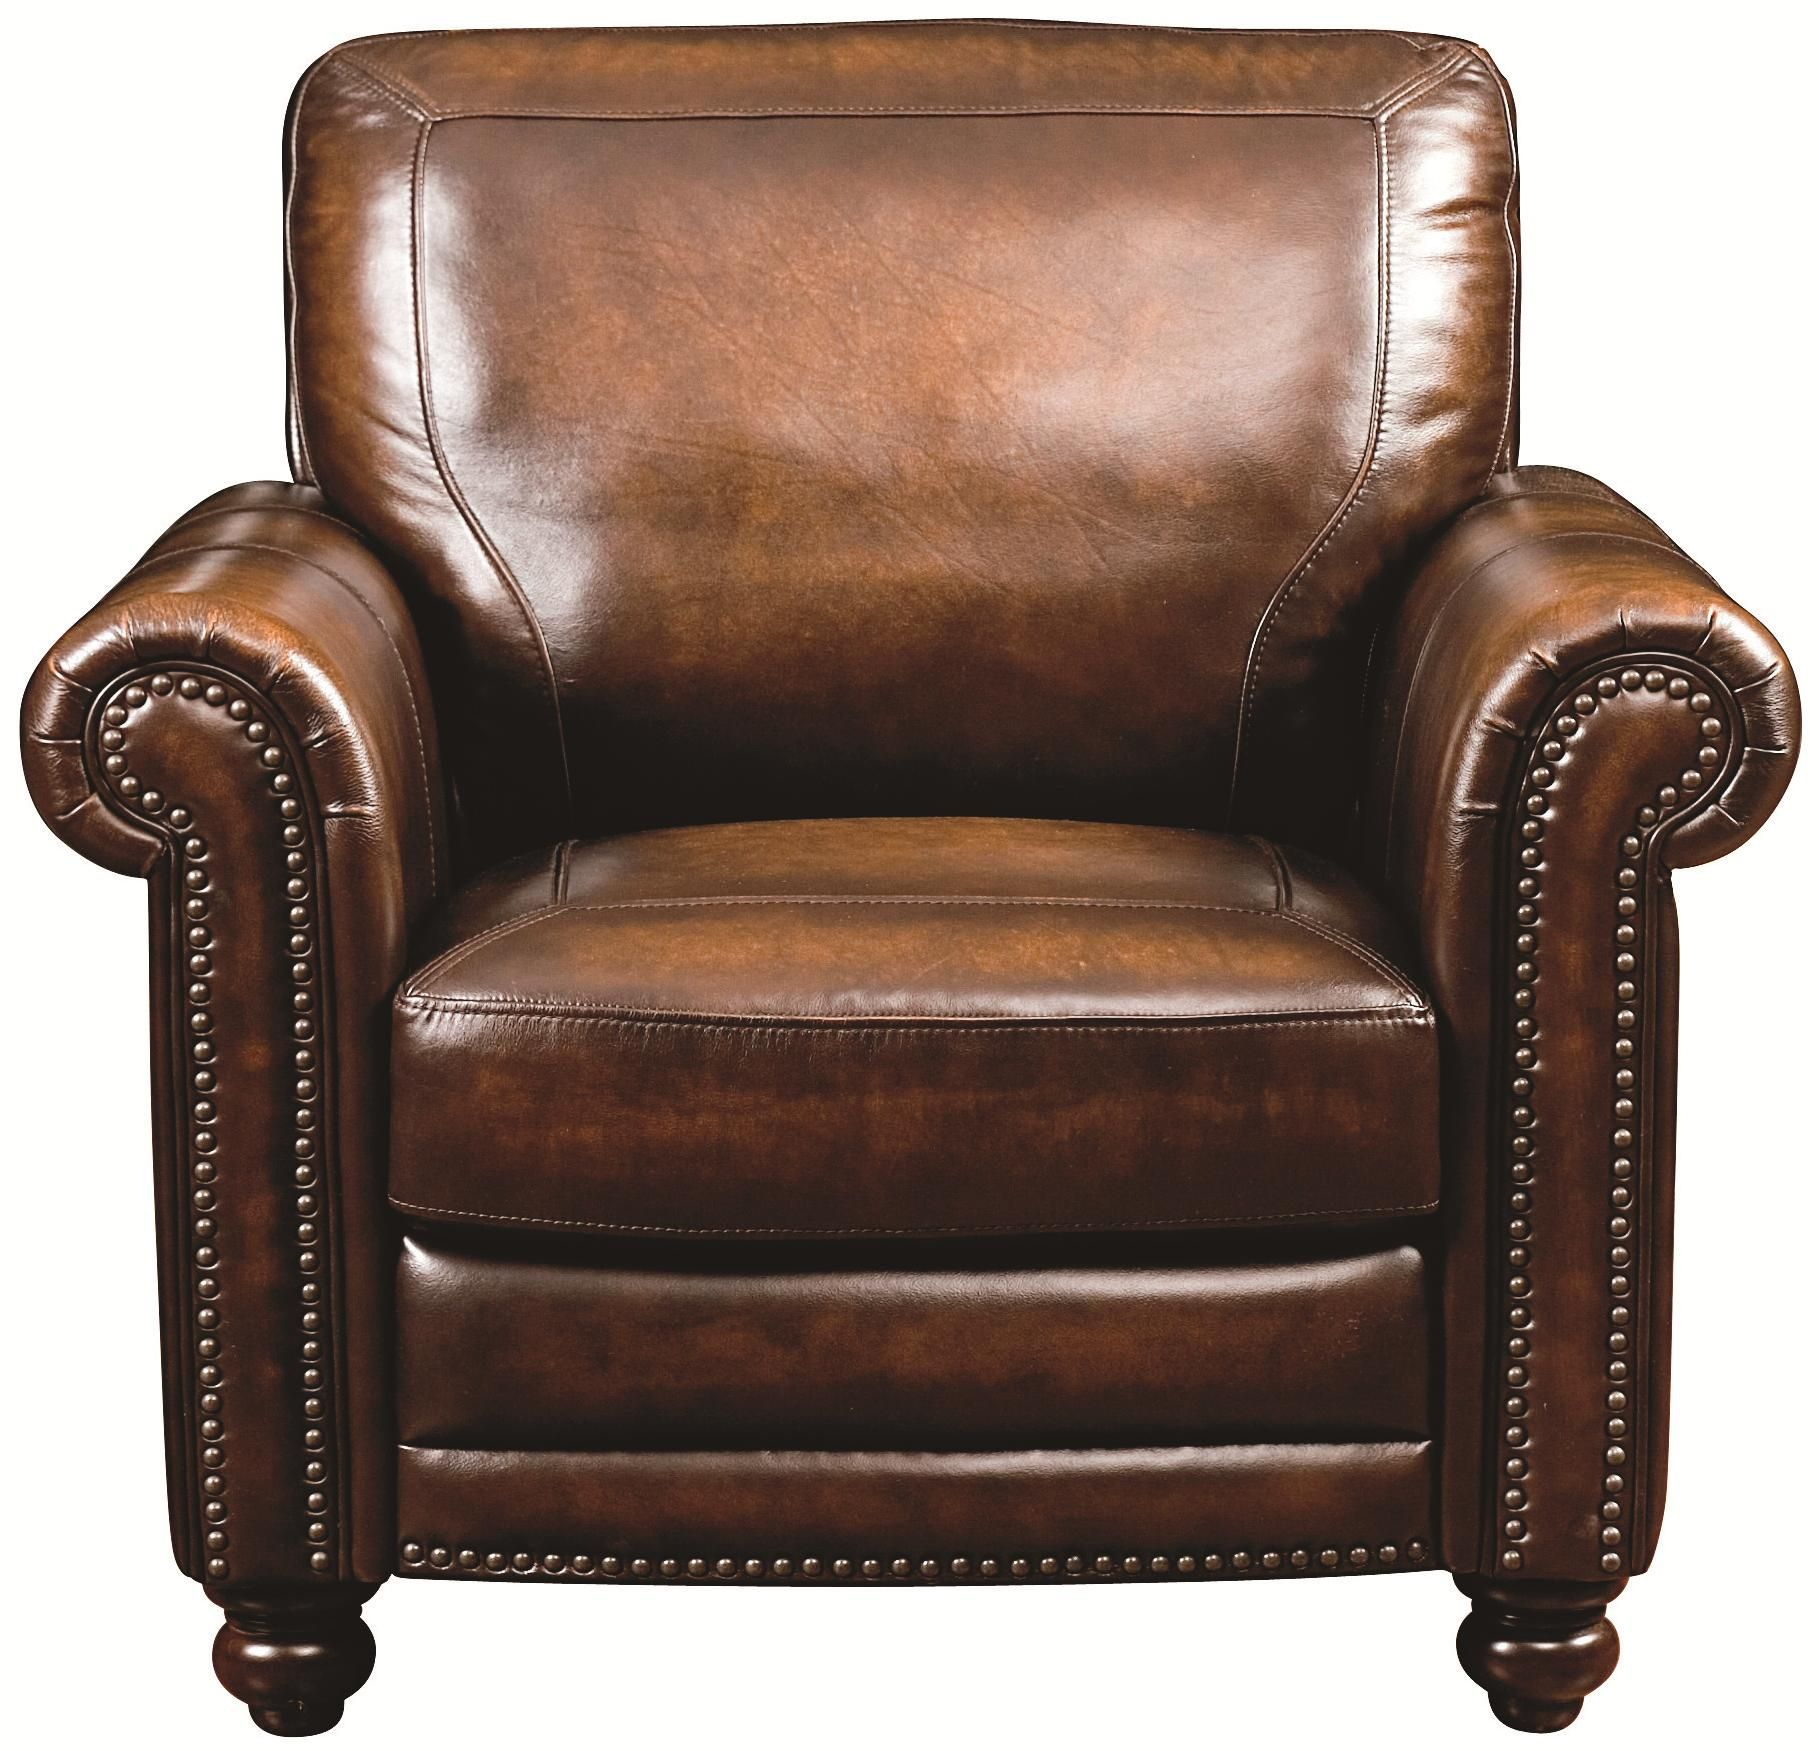 Hamilton Chair by Bassett at Great American Home Store